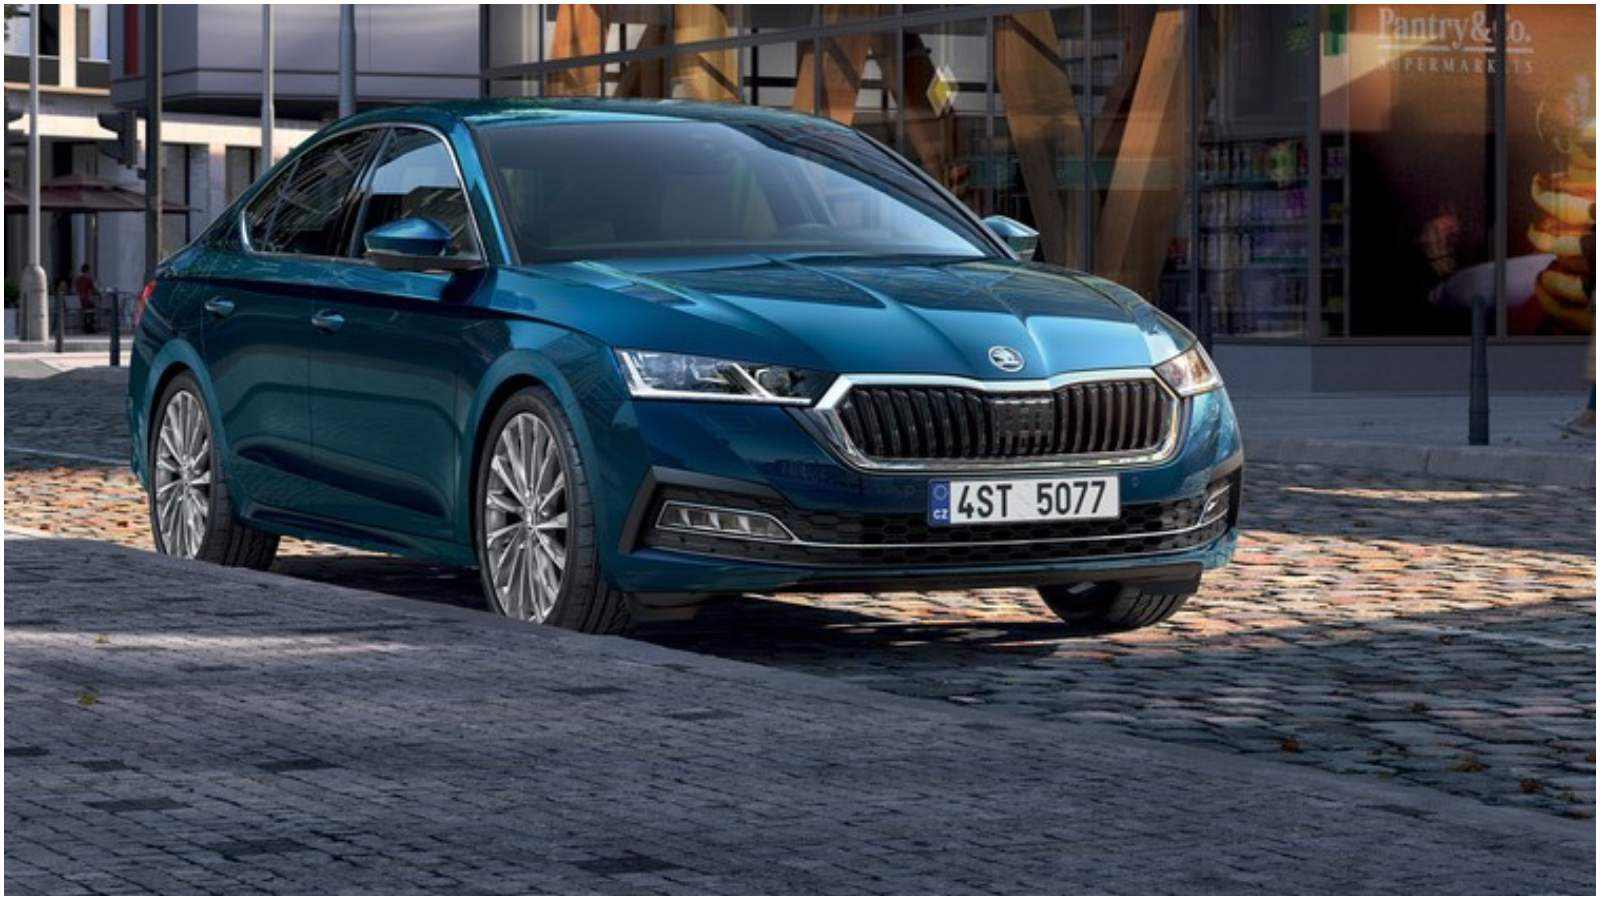 2020 skoda octavia launched delayed to 2021 see why